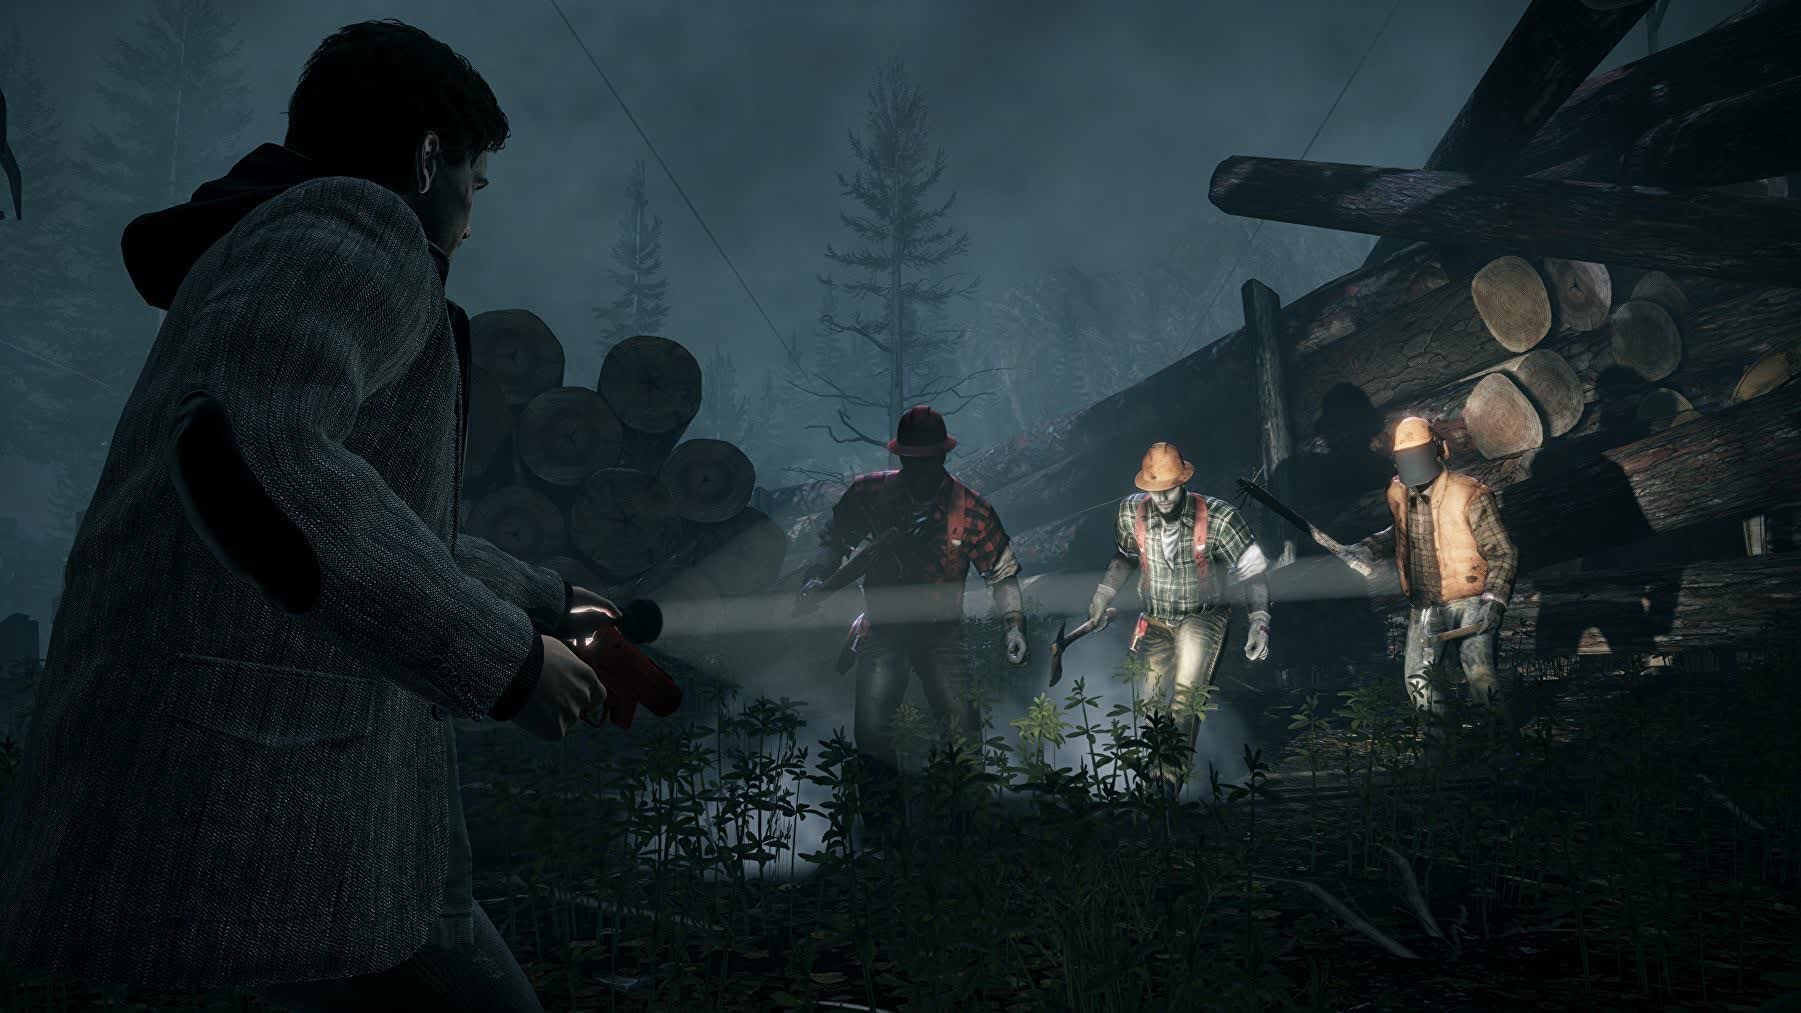 Alan Wake Remastered lacks ray tracing and HDR but supports Nvidia DLSS - check out the PC requirements